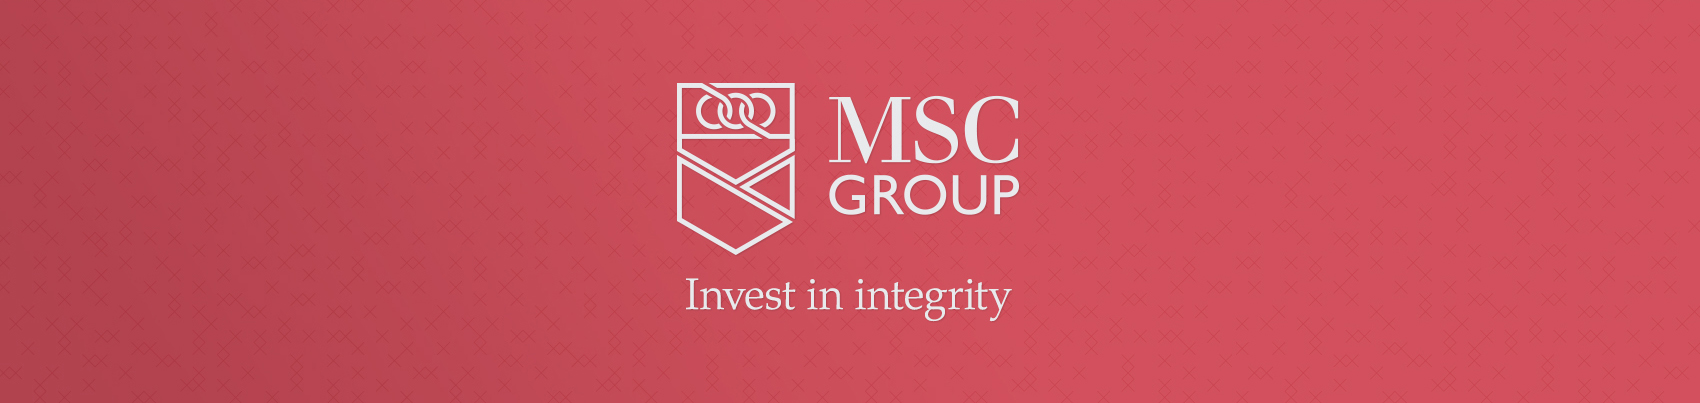 MSC Group - Invest in integity